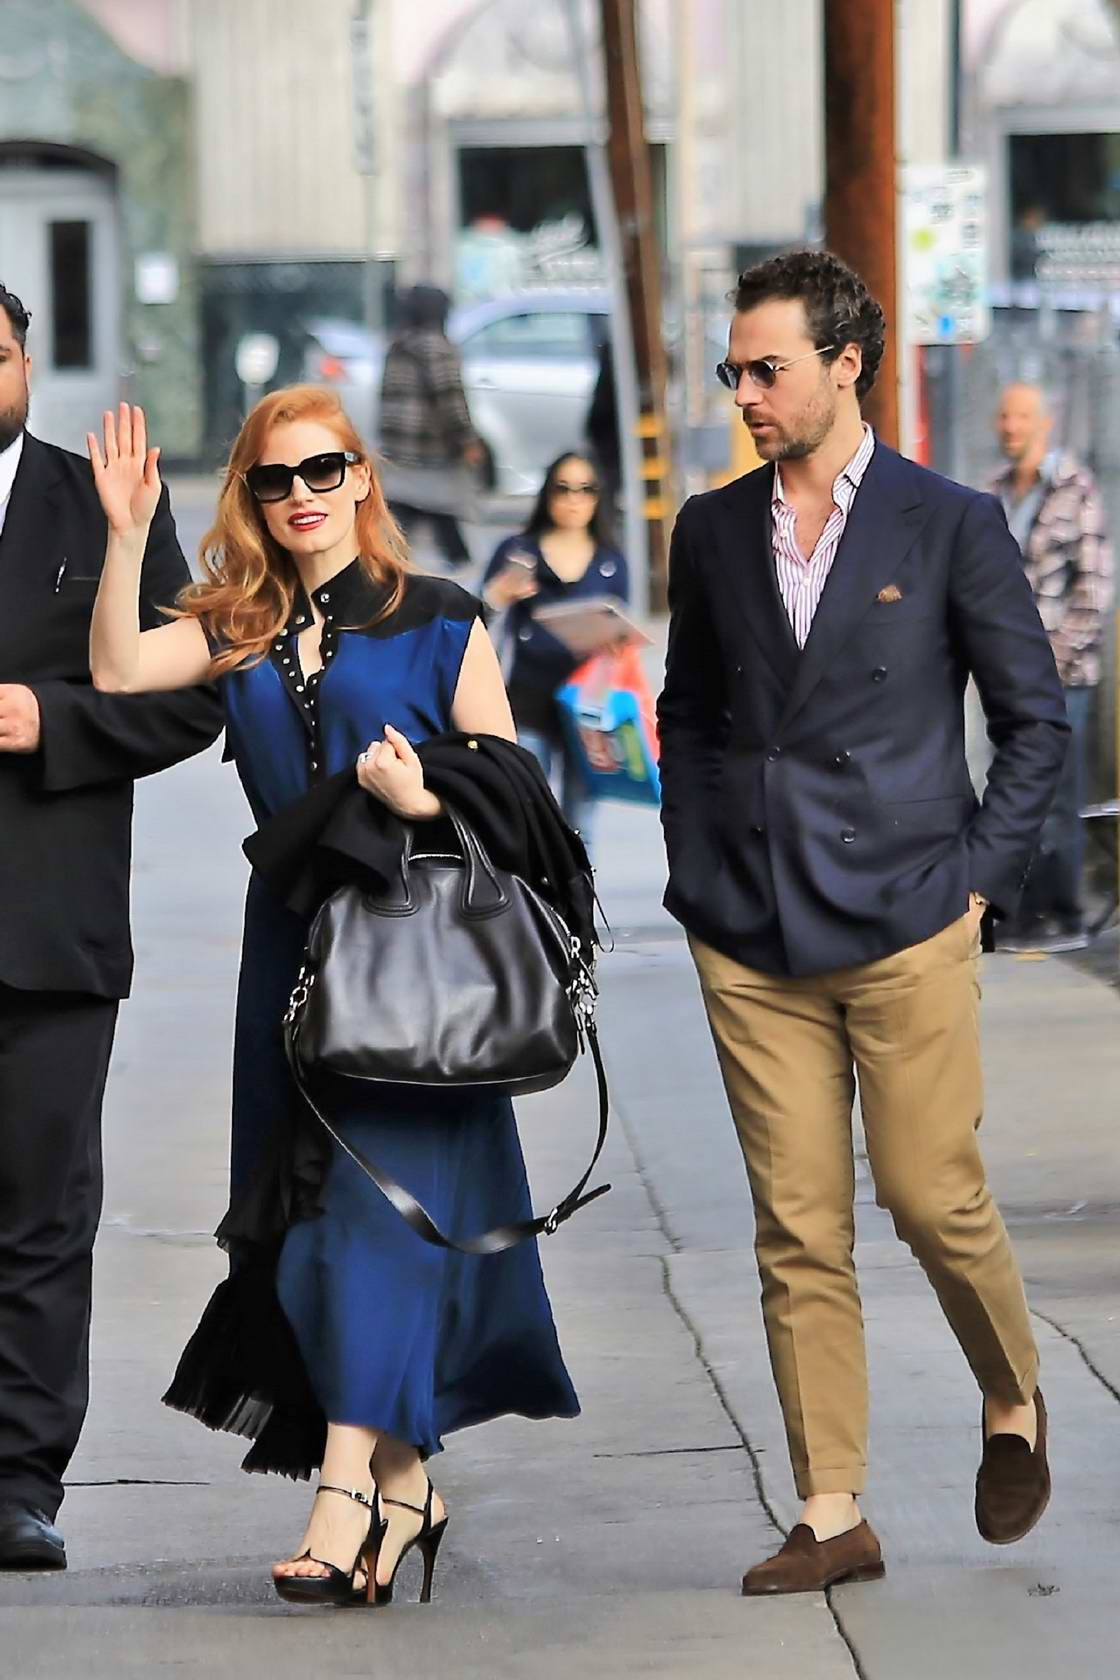 Jessica Chastain arrives for her appearance on Jimmy Kimmel Live! in Hollywood, Los Angeles